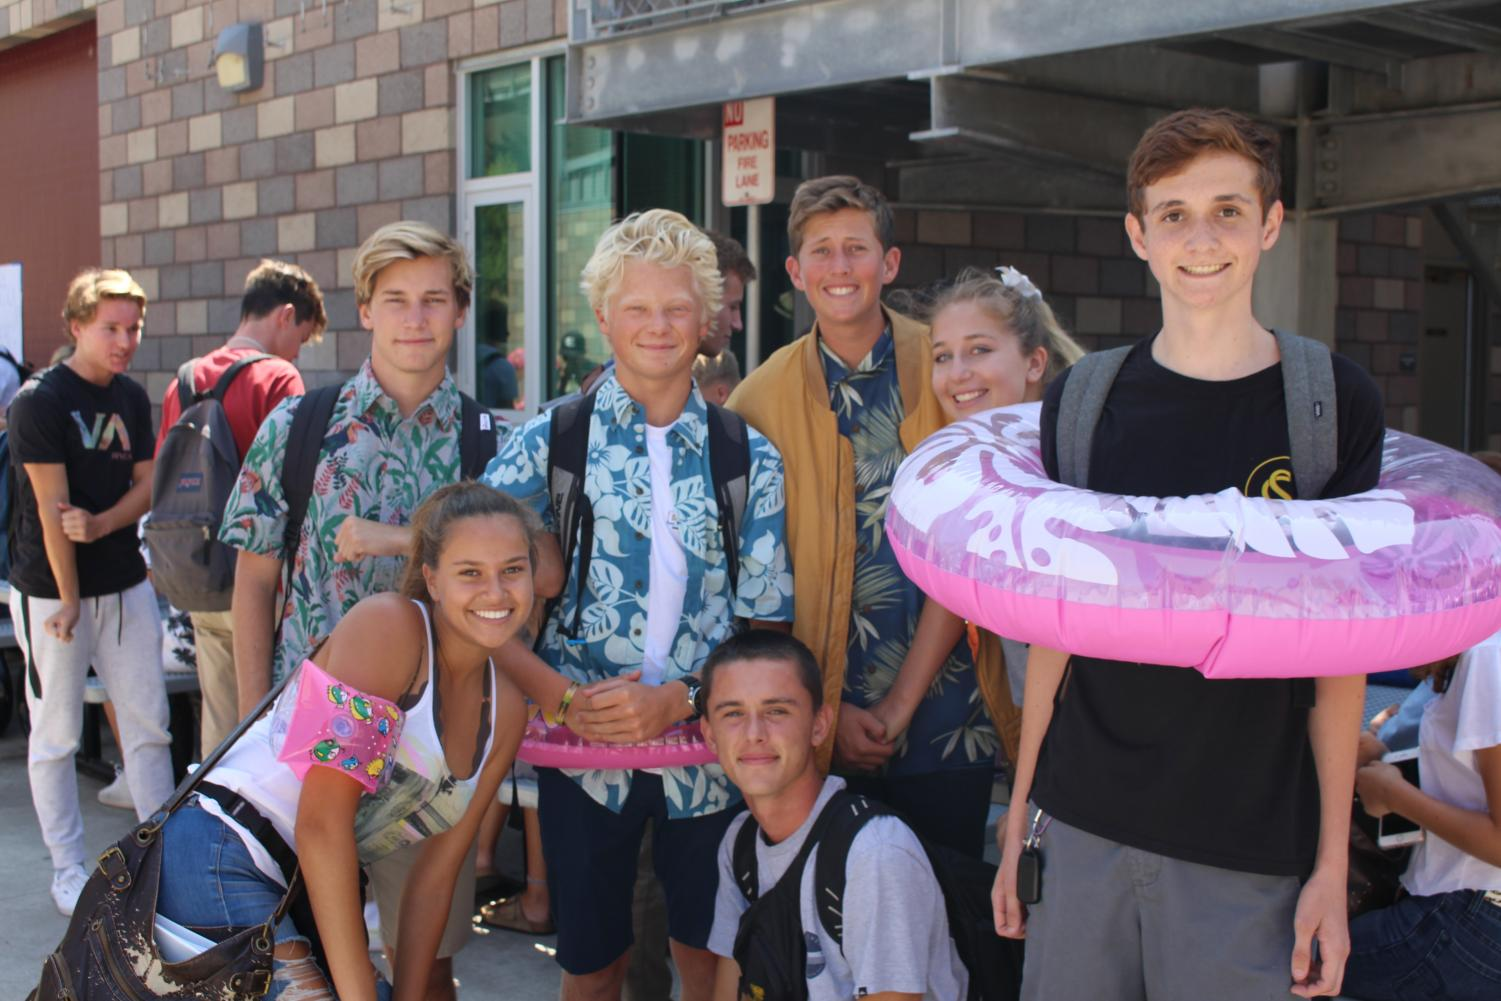 """Seniors Carla Kelliny, Adam Salter, Oliver Schnitzenbaumer, Chris Engel, Jackson Ginn, Maddie Devilbiss and Tim Baxter, show Bobcat spirit for """"Floaty Friday"""". Seniors anticipate the start of senior assassins by participating in the spirit day that helped them get in the habit of wearing a floaty for protection against their """"assassins."""""""